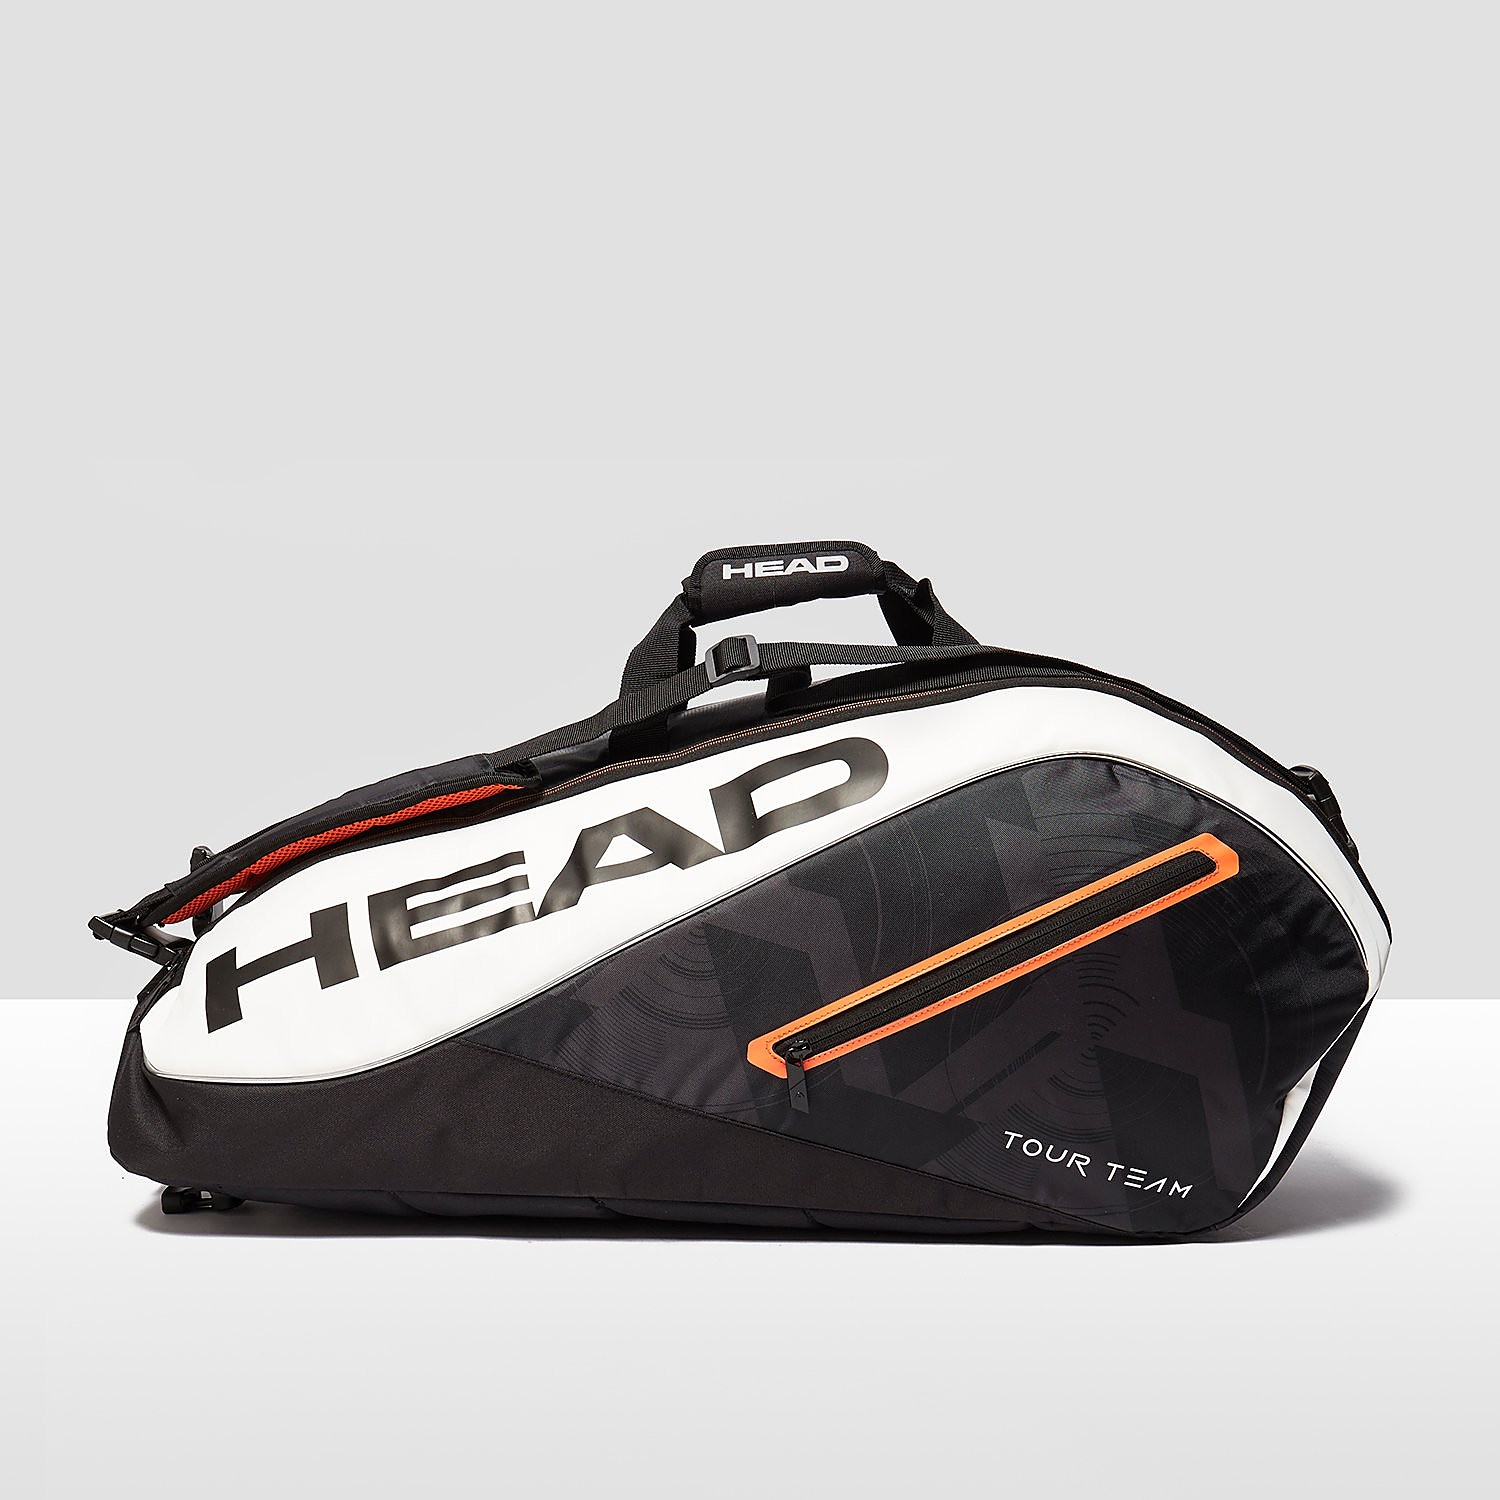 Head 9R Tour Team Supercombi  Racketbag